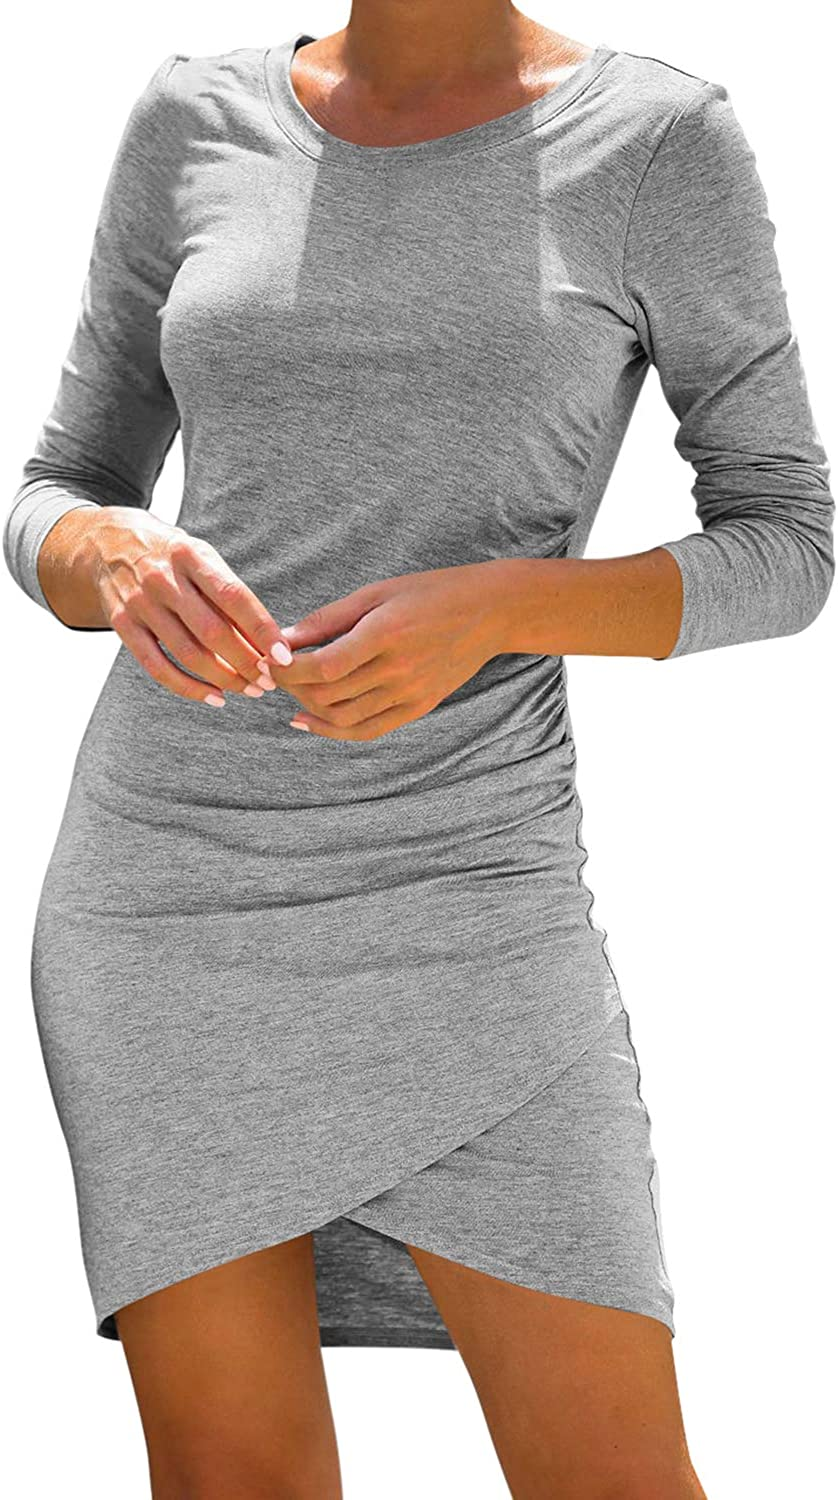 LaSuiveur Women's San Jose Our shop most popular Mall Casual Long Sleeve Bodycon Wrapped T Ruched Sh